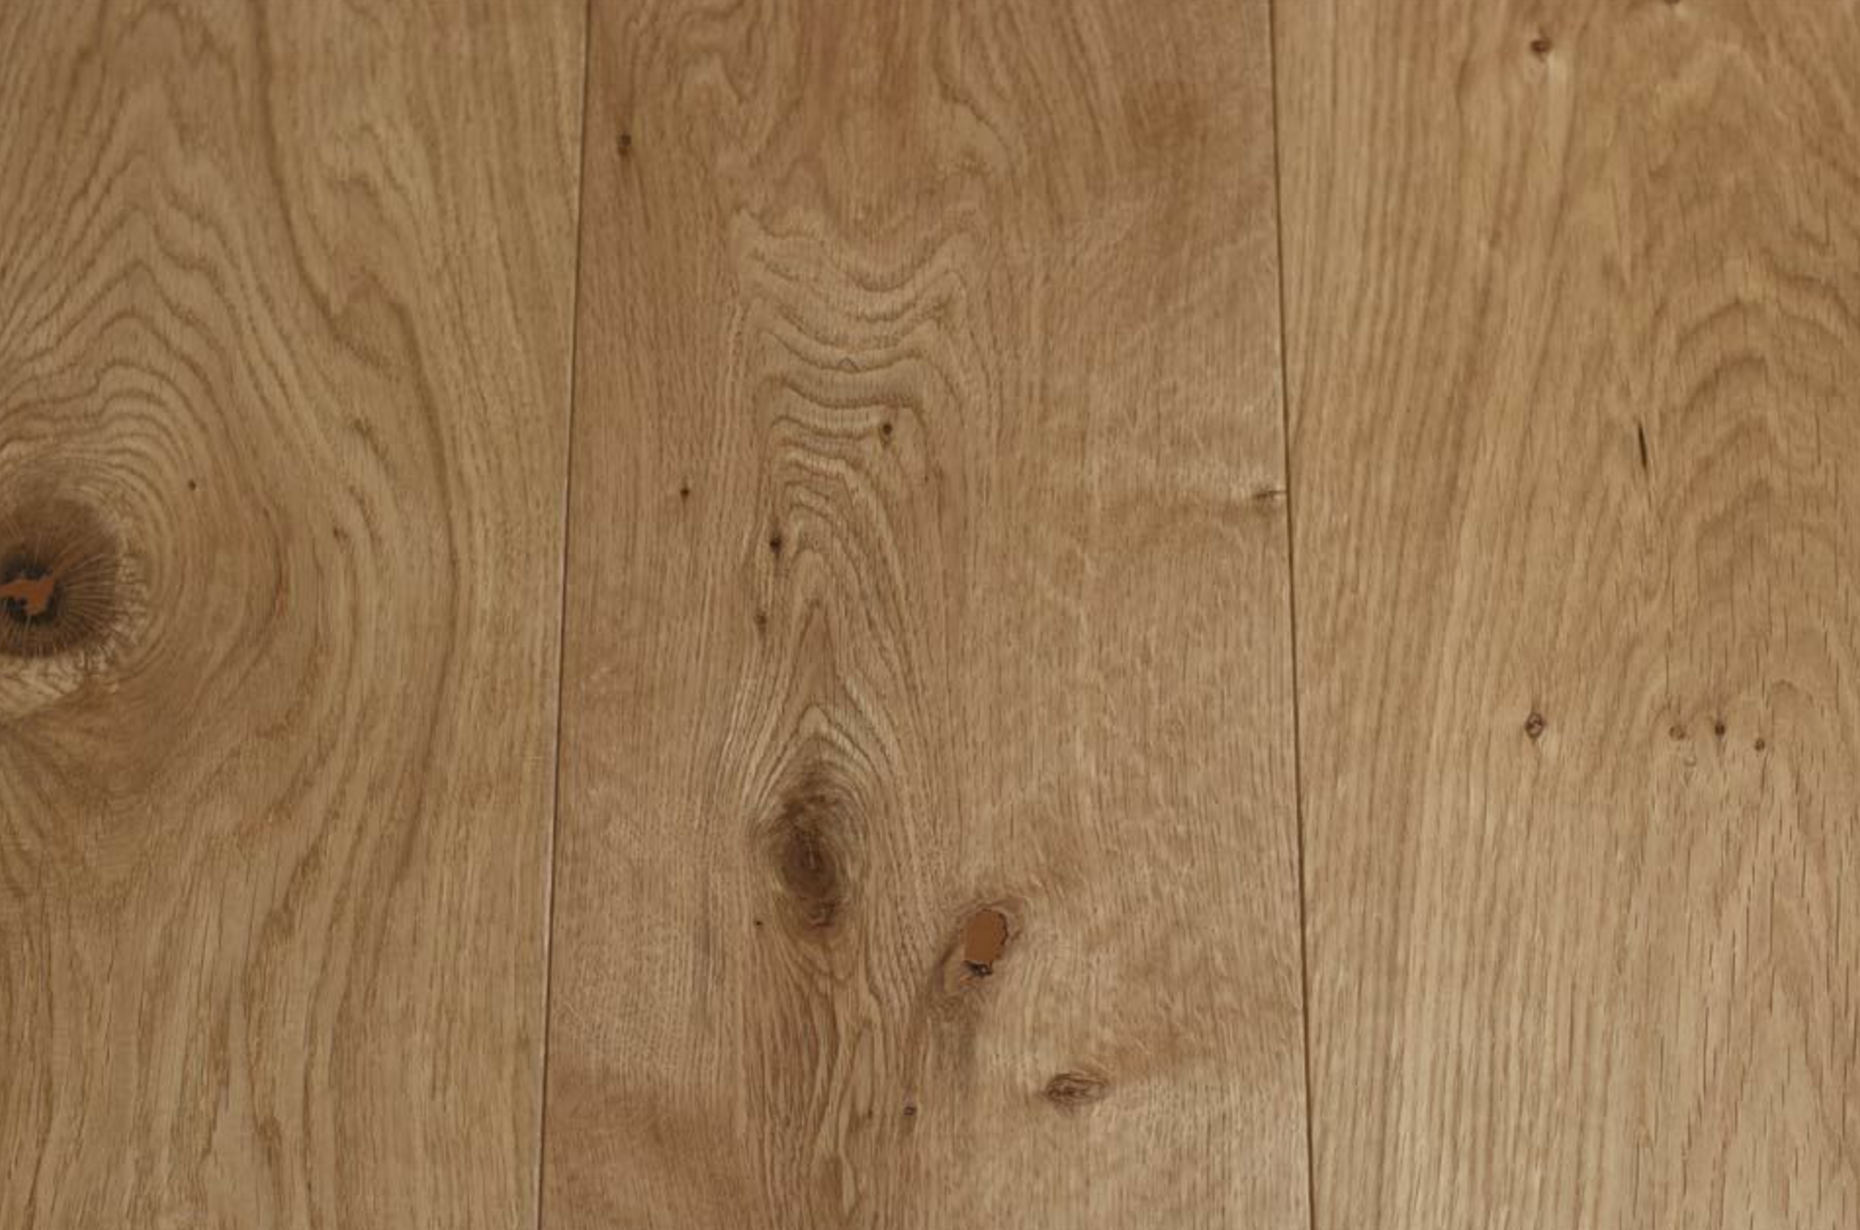 medium floorboards